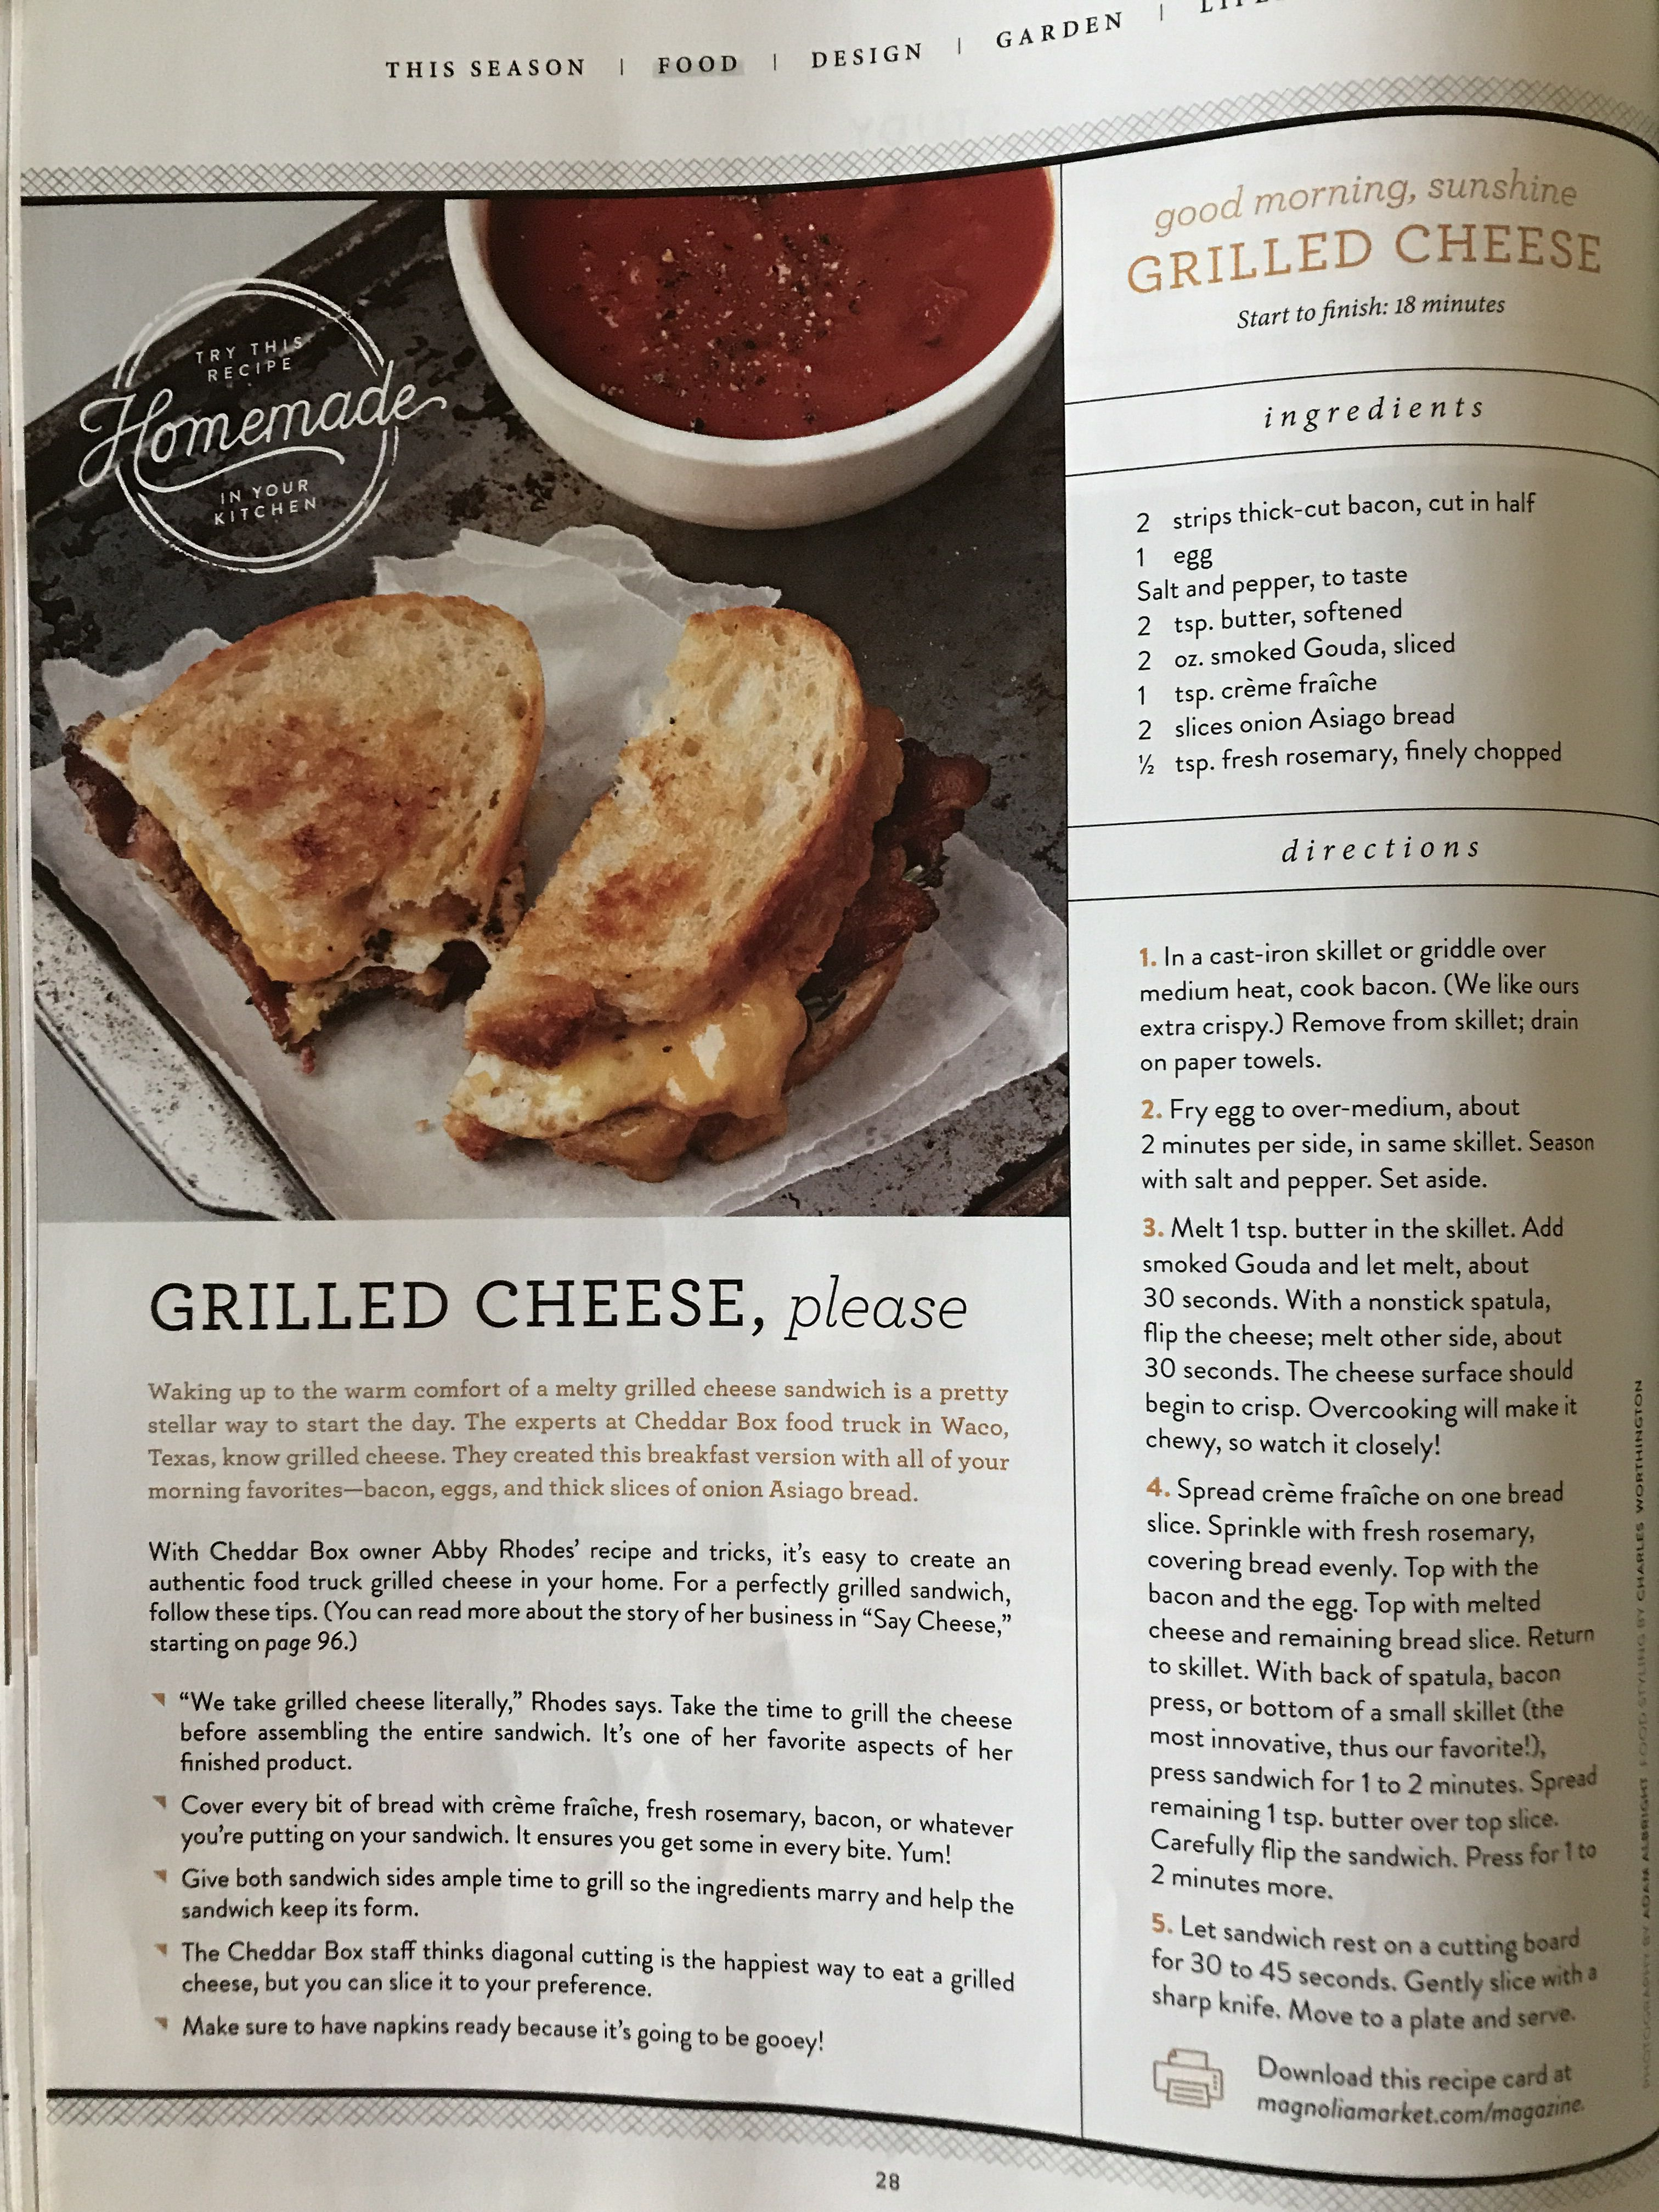 Pin by Sarah Carothers on Meals Recipes, Food, Cooking